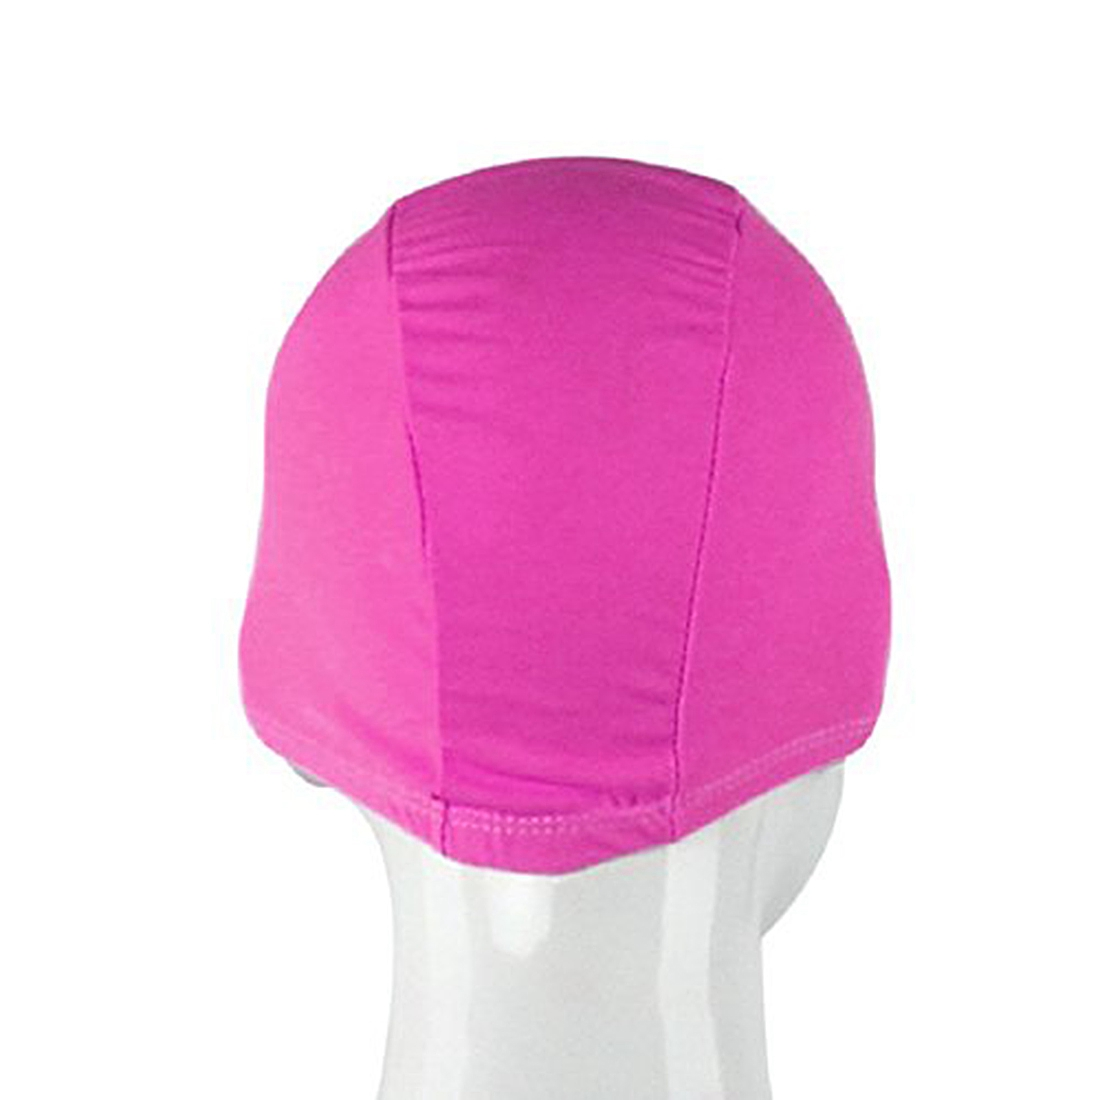 Adult Swimming Hats Unisex Outdoor Sports Stretch Cap Yellow Rose Red Multan